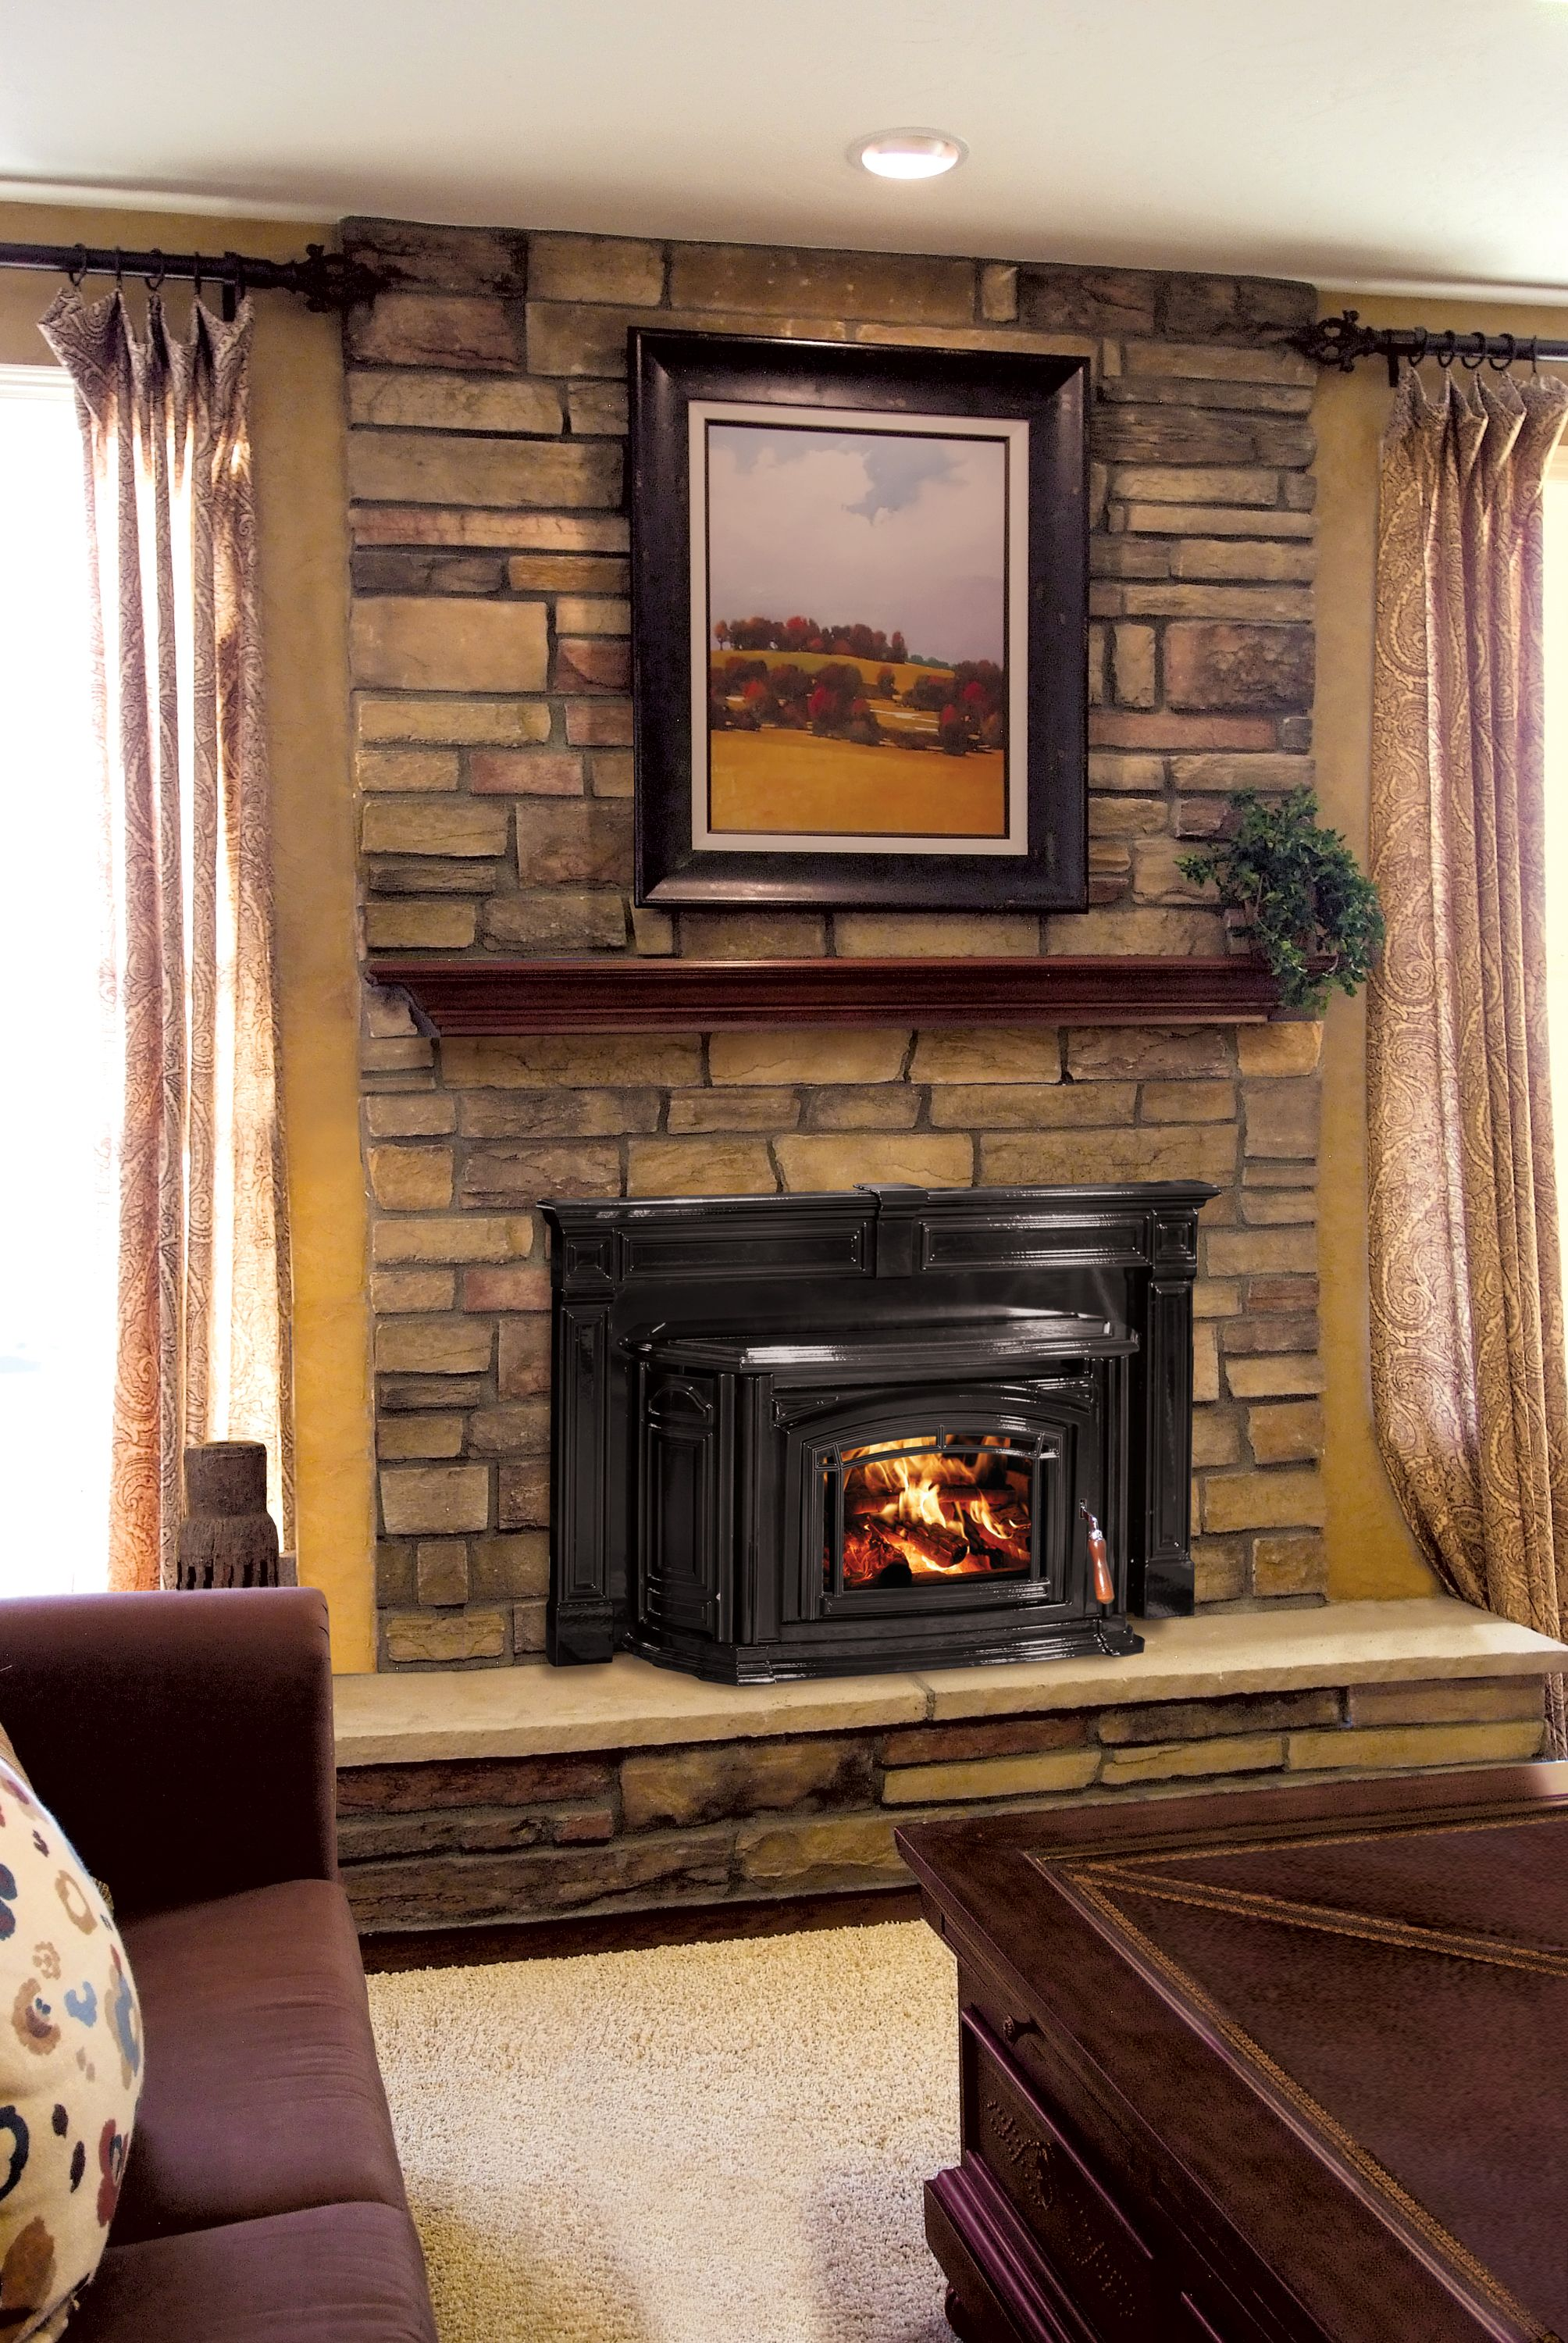 e2ccf2908a75571994fbbf4d4d530a4c Top Result 50 Unique Best Wood Fireplace Insert